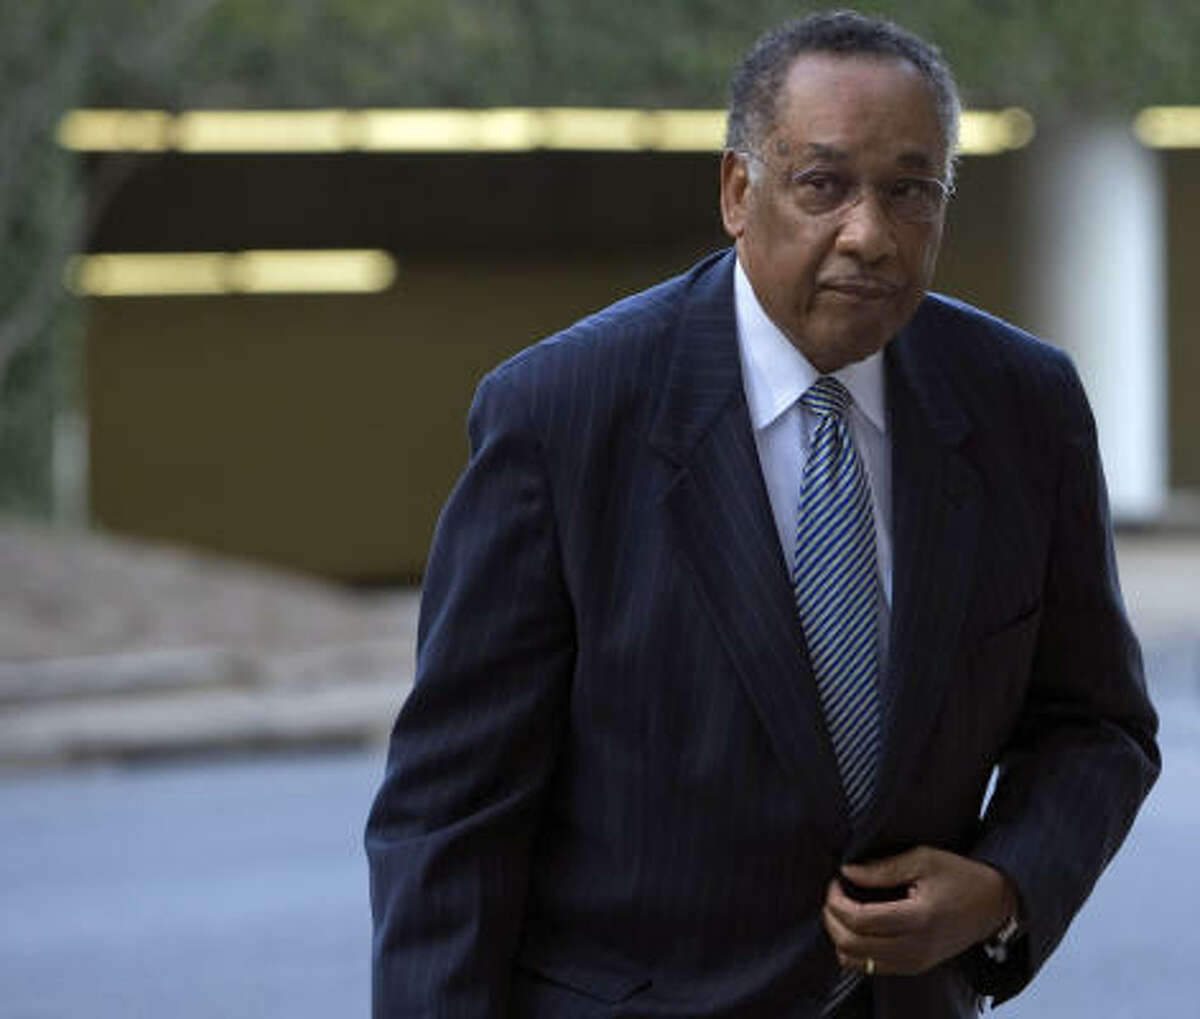 Former Houston Police Chief Lee P. Brown, arriving at the federal courthouse on Wednesday, said he was unaware of shoddy lab work and falsification of evidence until 2002.